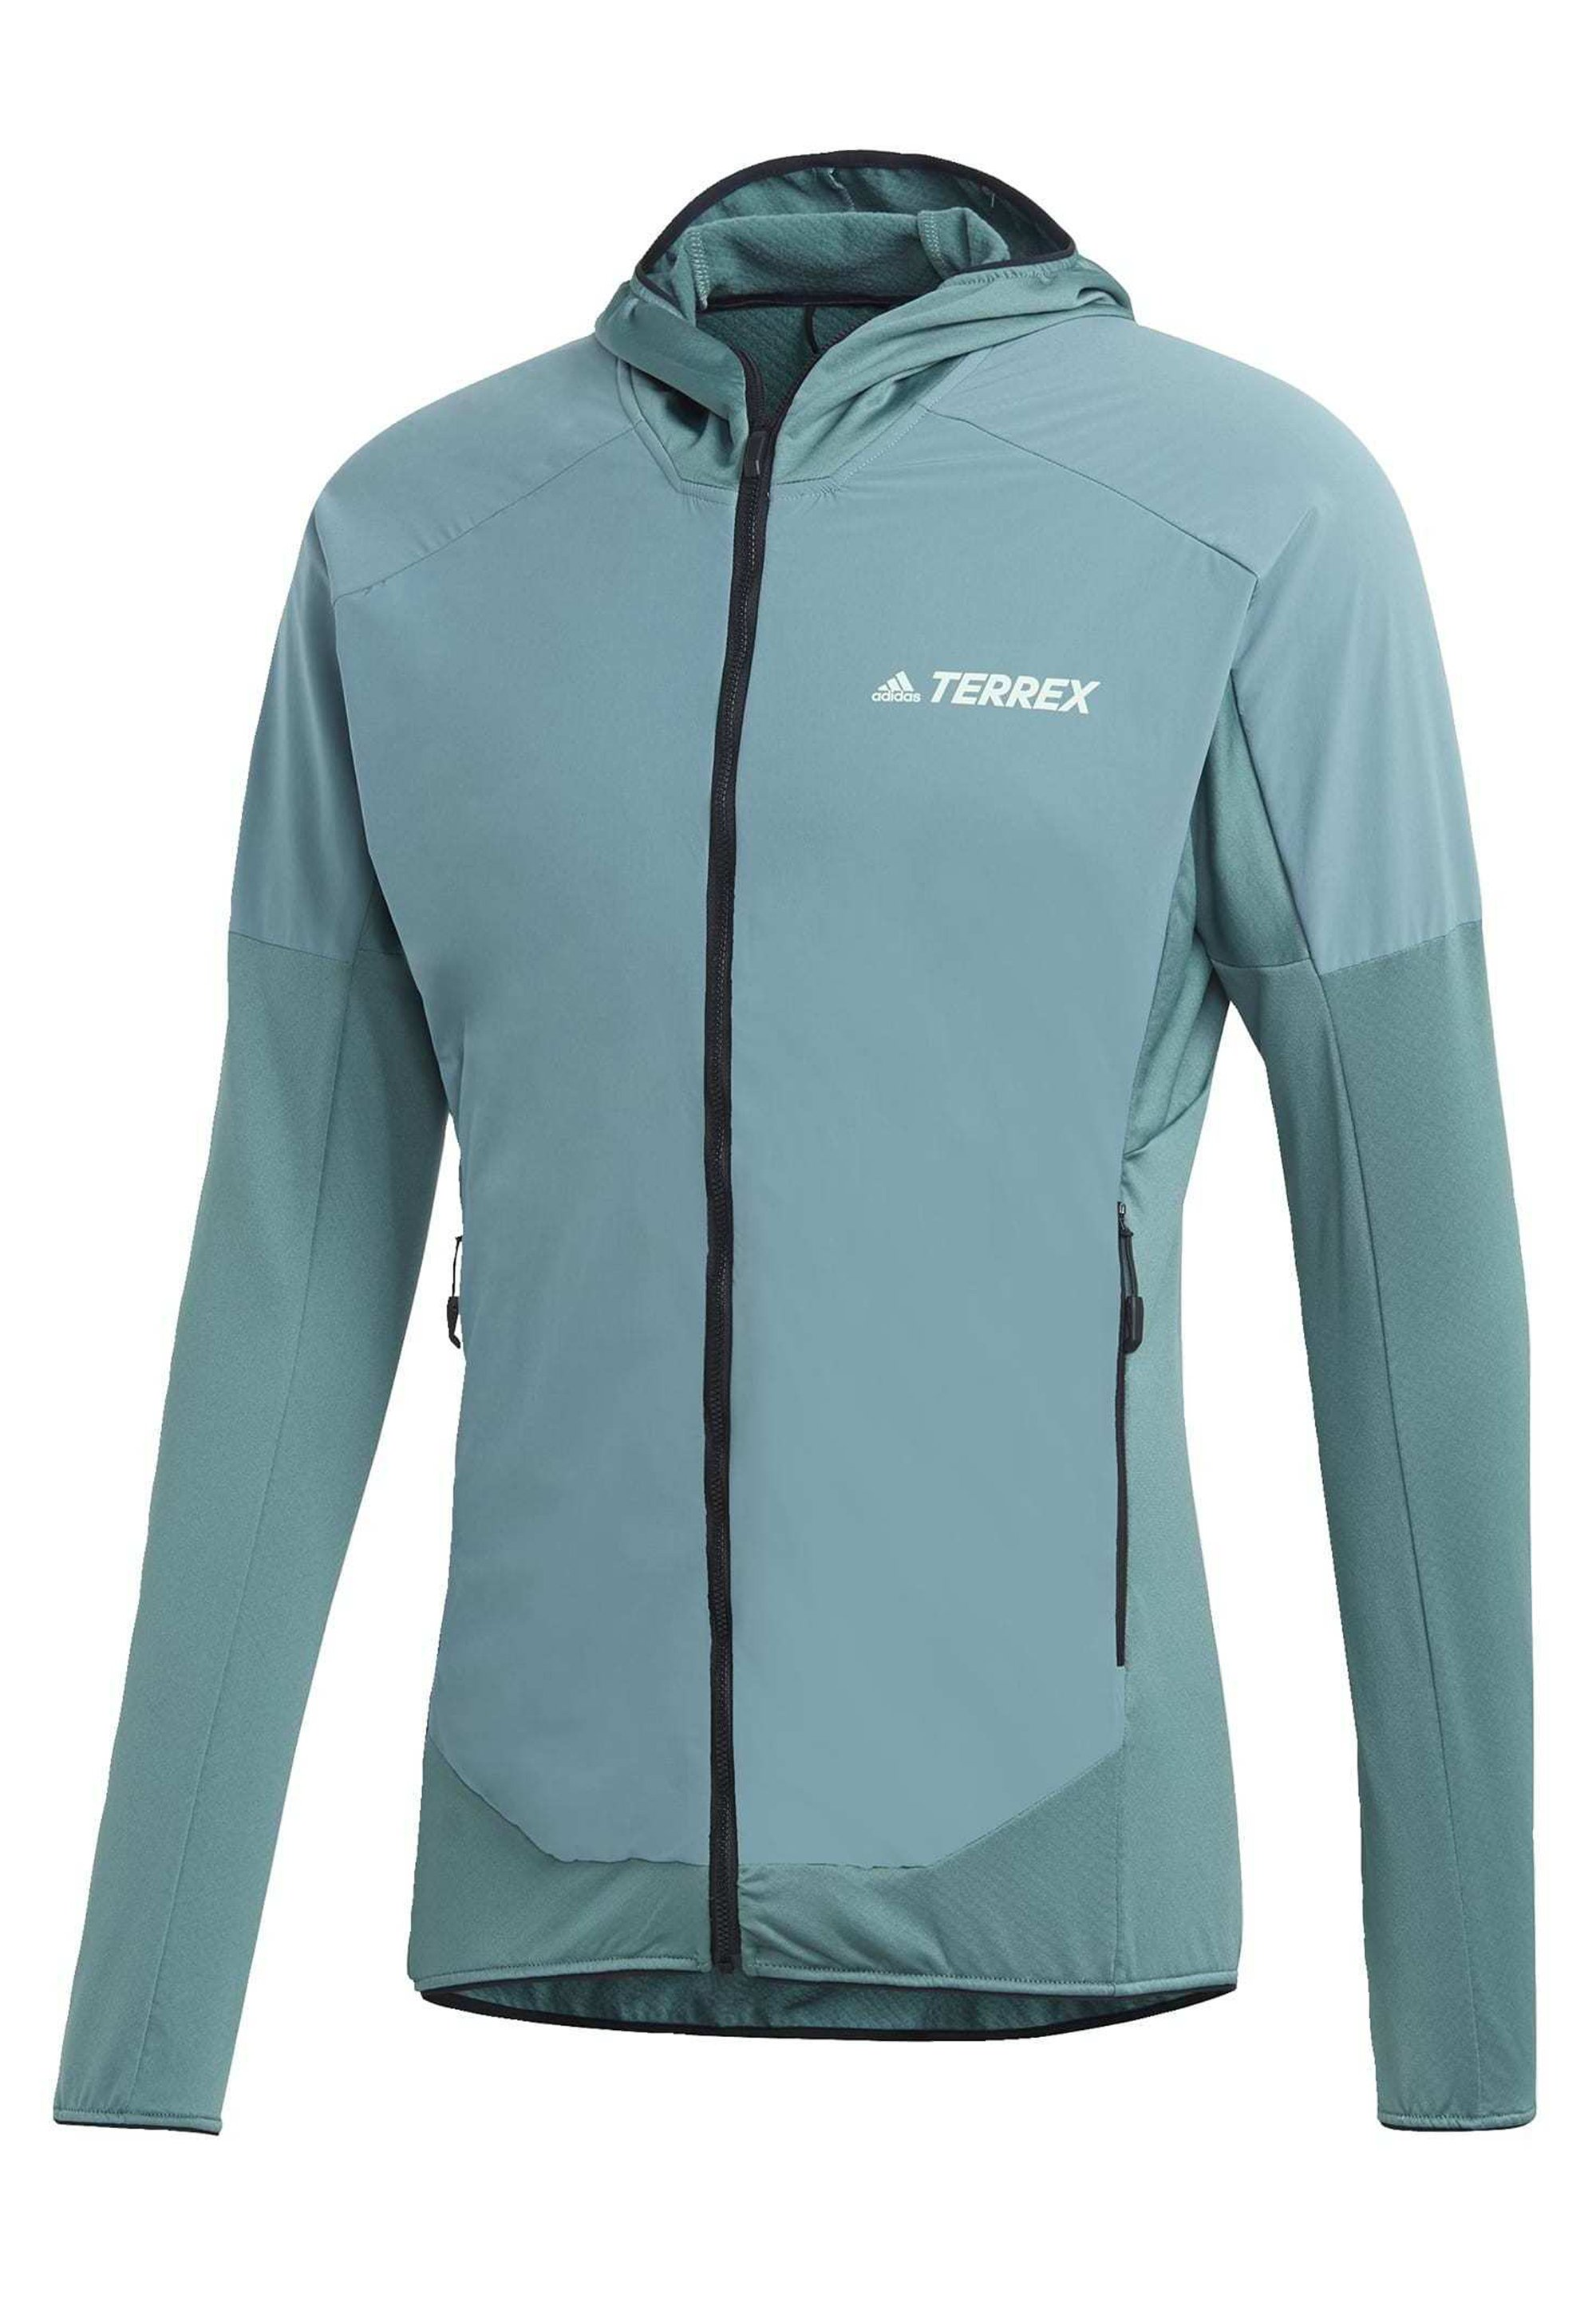 adidas TERREX Stockhorn Fleece Jacket Herren tech ink | campz.at